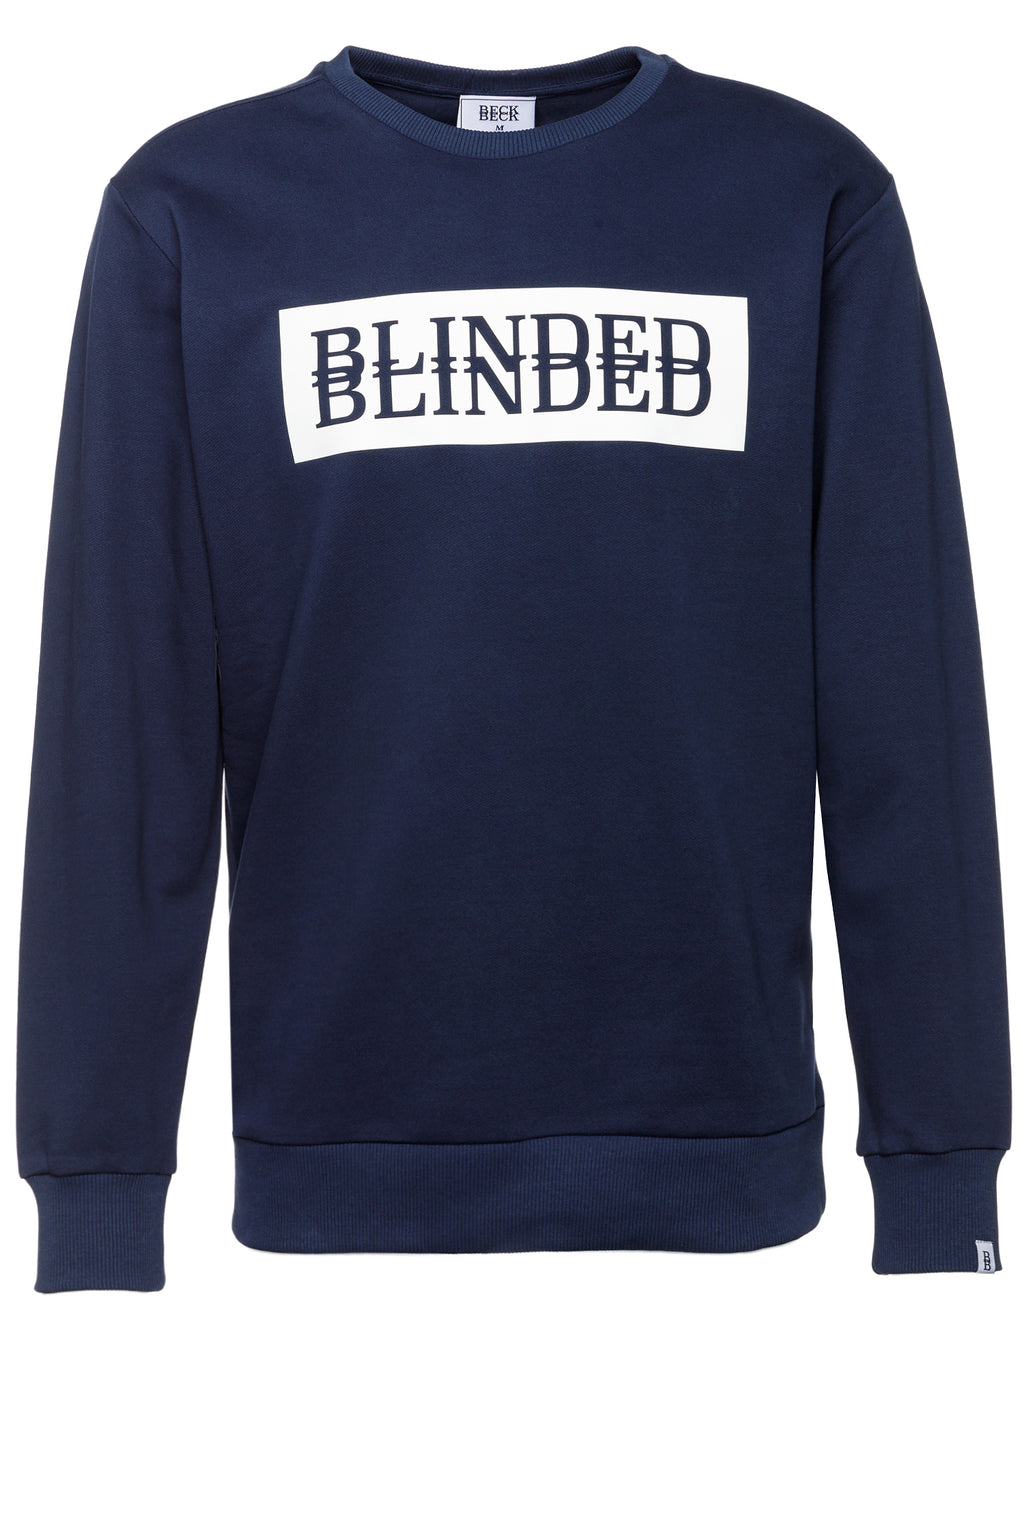 "BECK TO BECK Sweatshirt ""BLINDED BLINDED"""